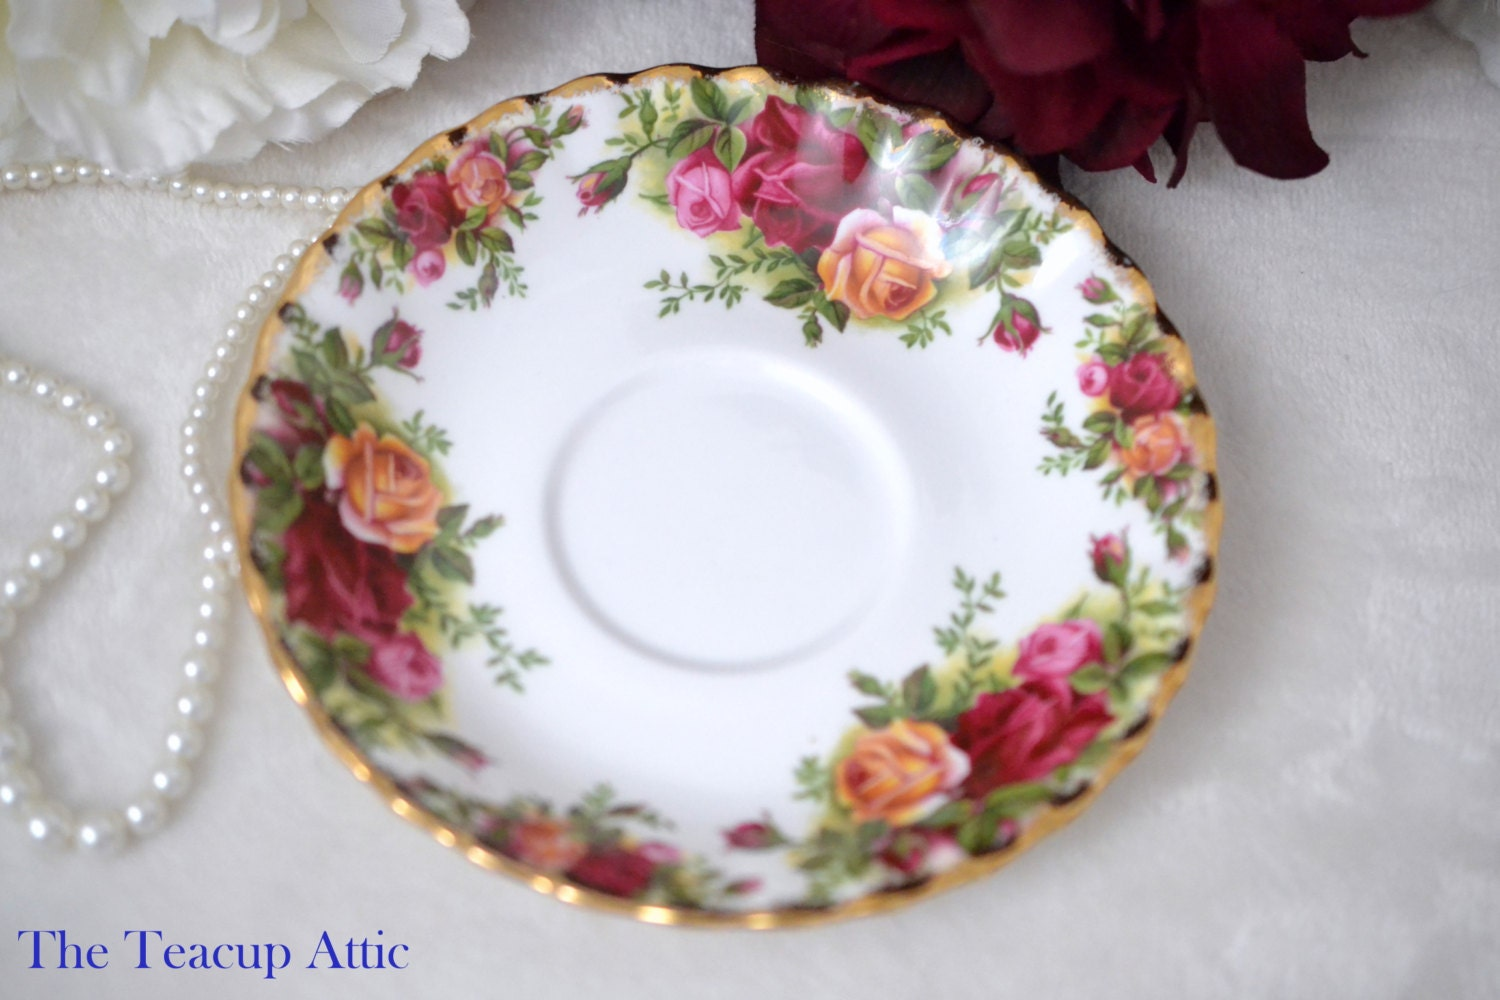 Royal Albert Old Country Roses Replacement Saucer Only, English Bone China Saucer,  ca. 1960-1970